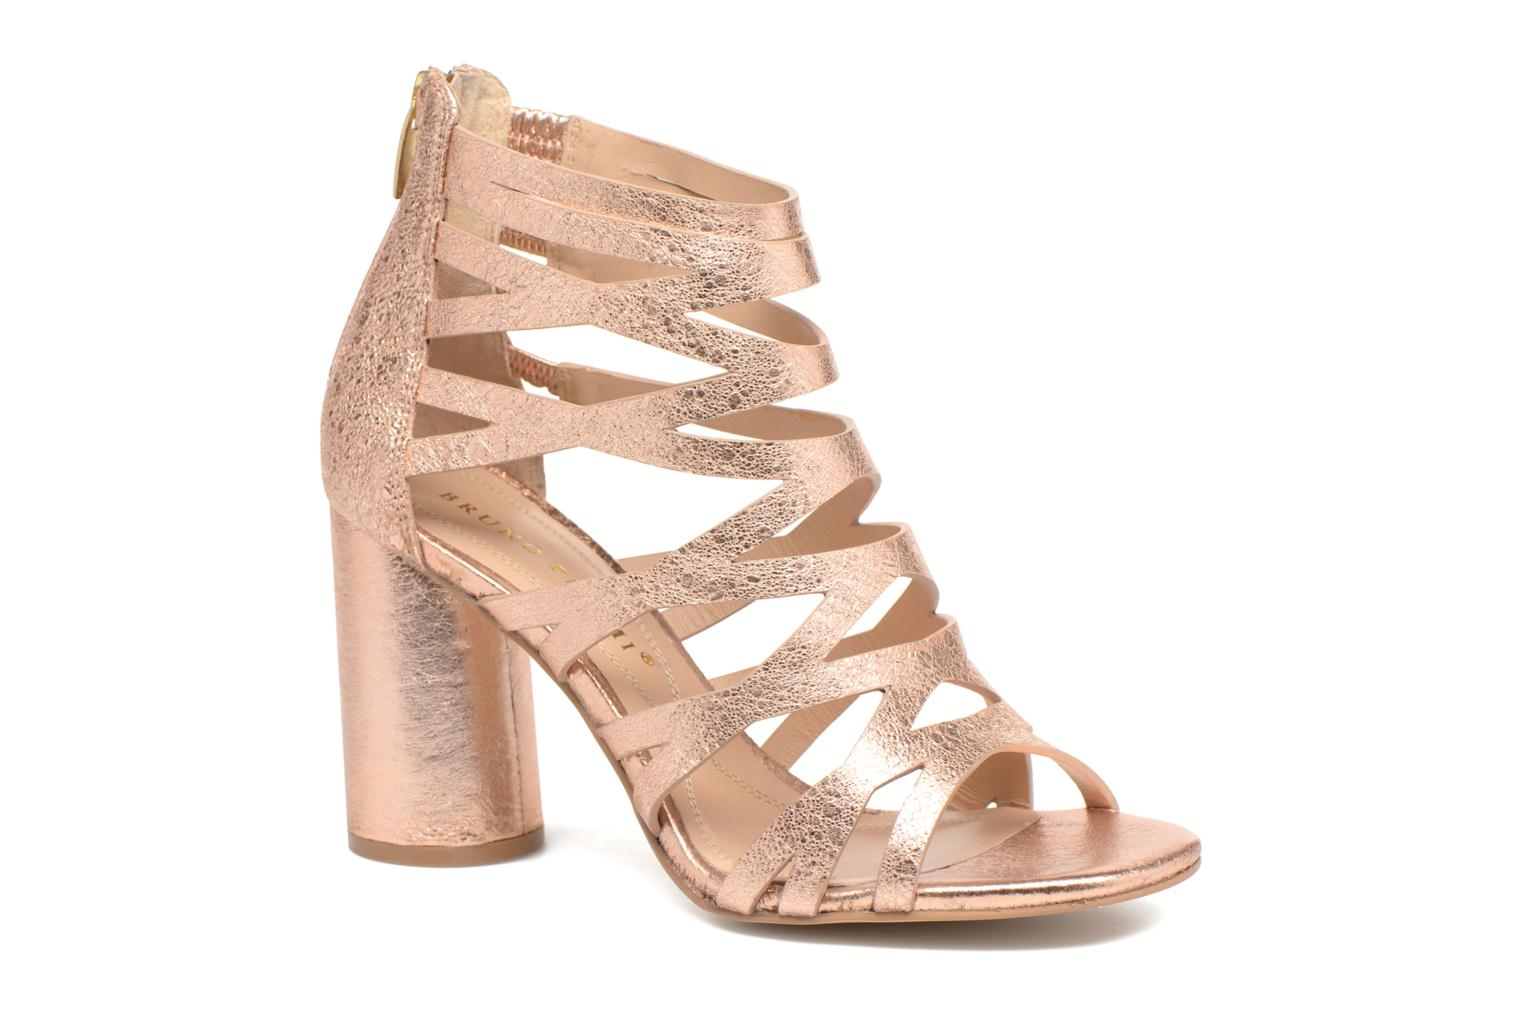 Marques Chaussure femme Bruno Premi femme AZALEE Nude